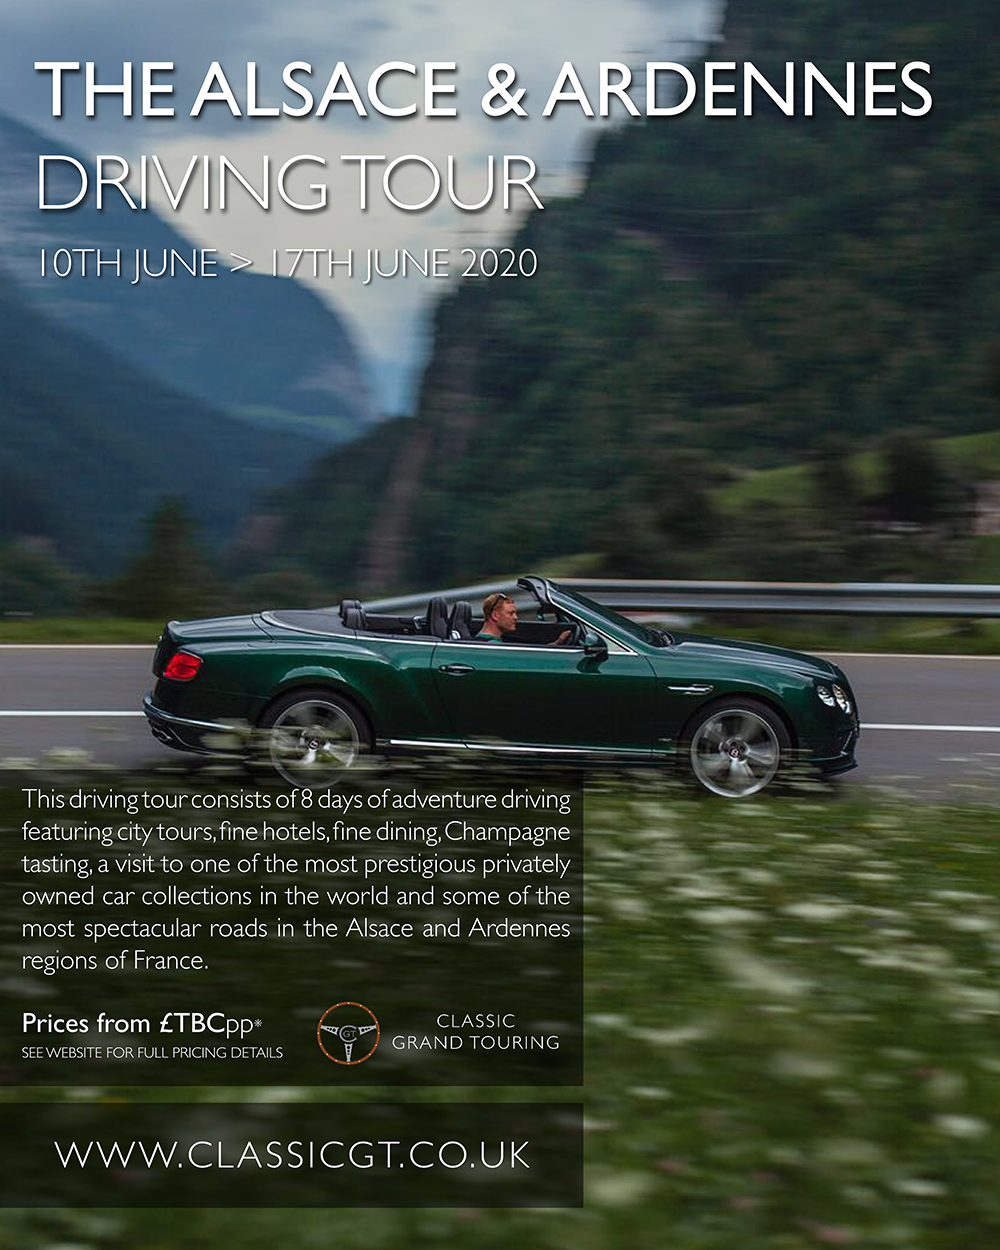 Alcase and Ardennes driving tour